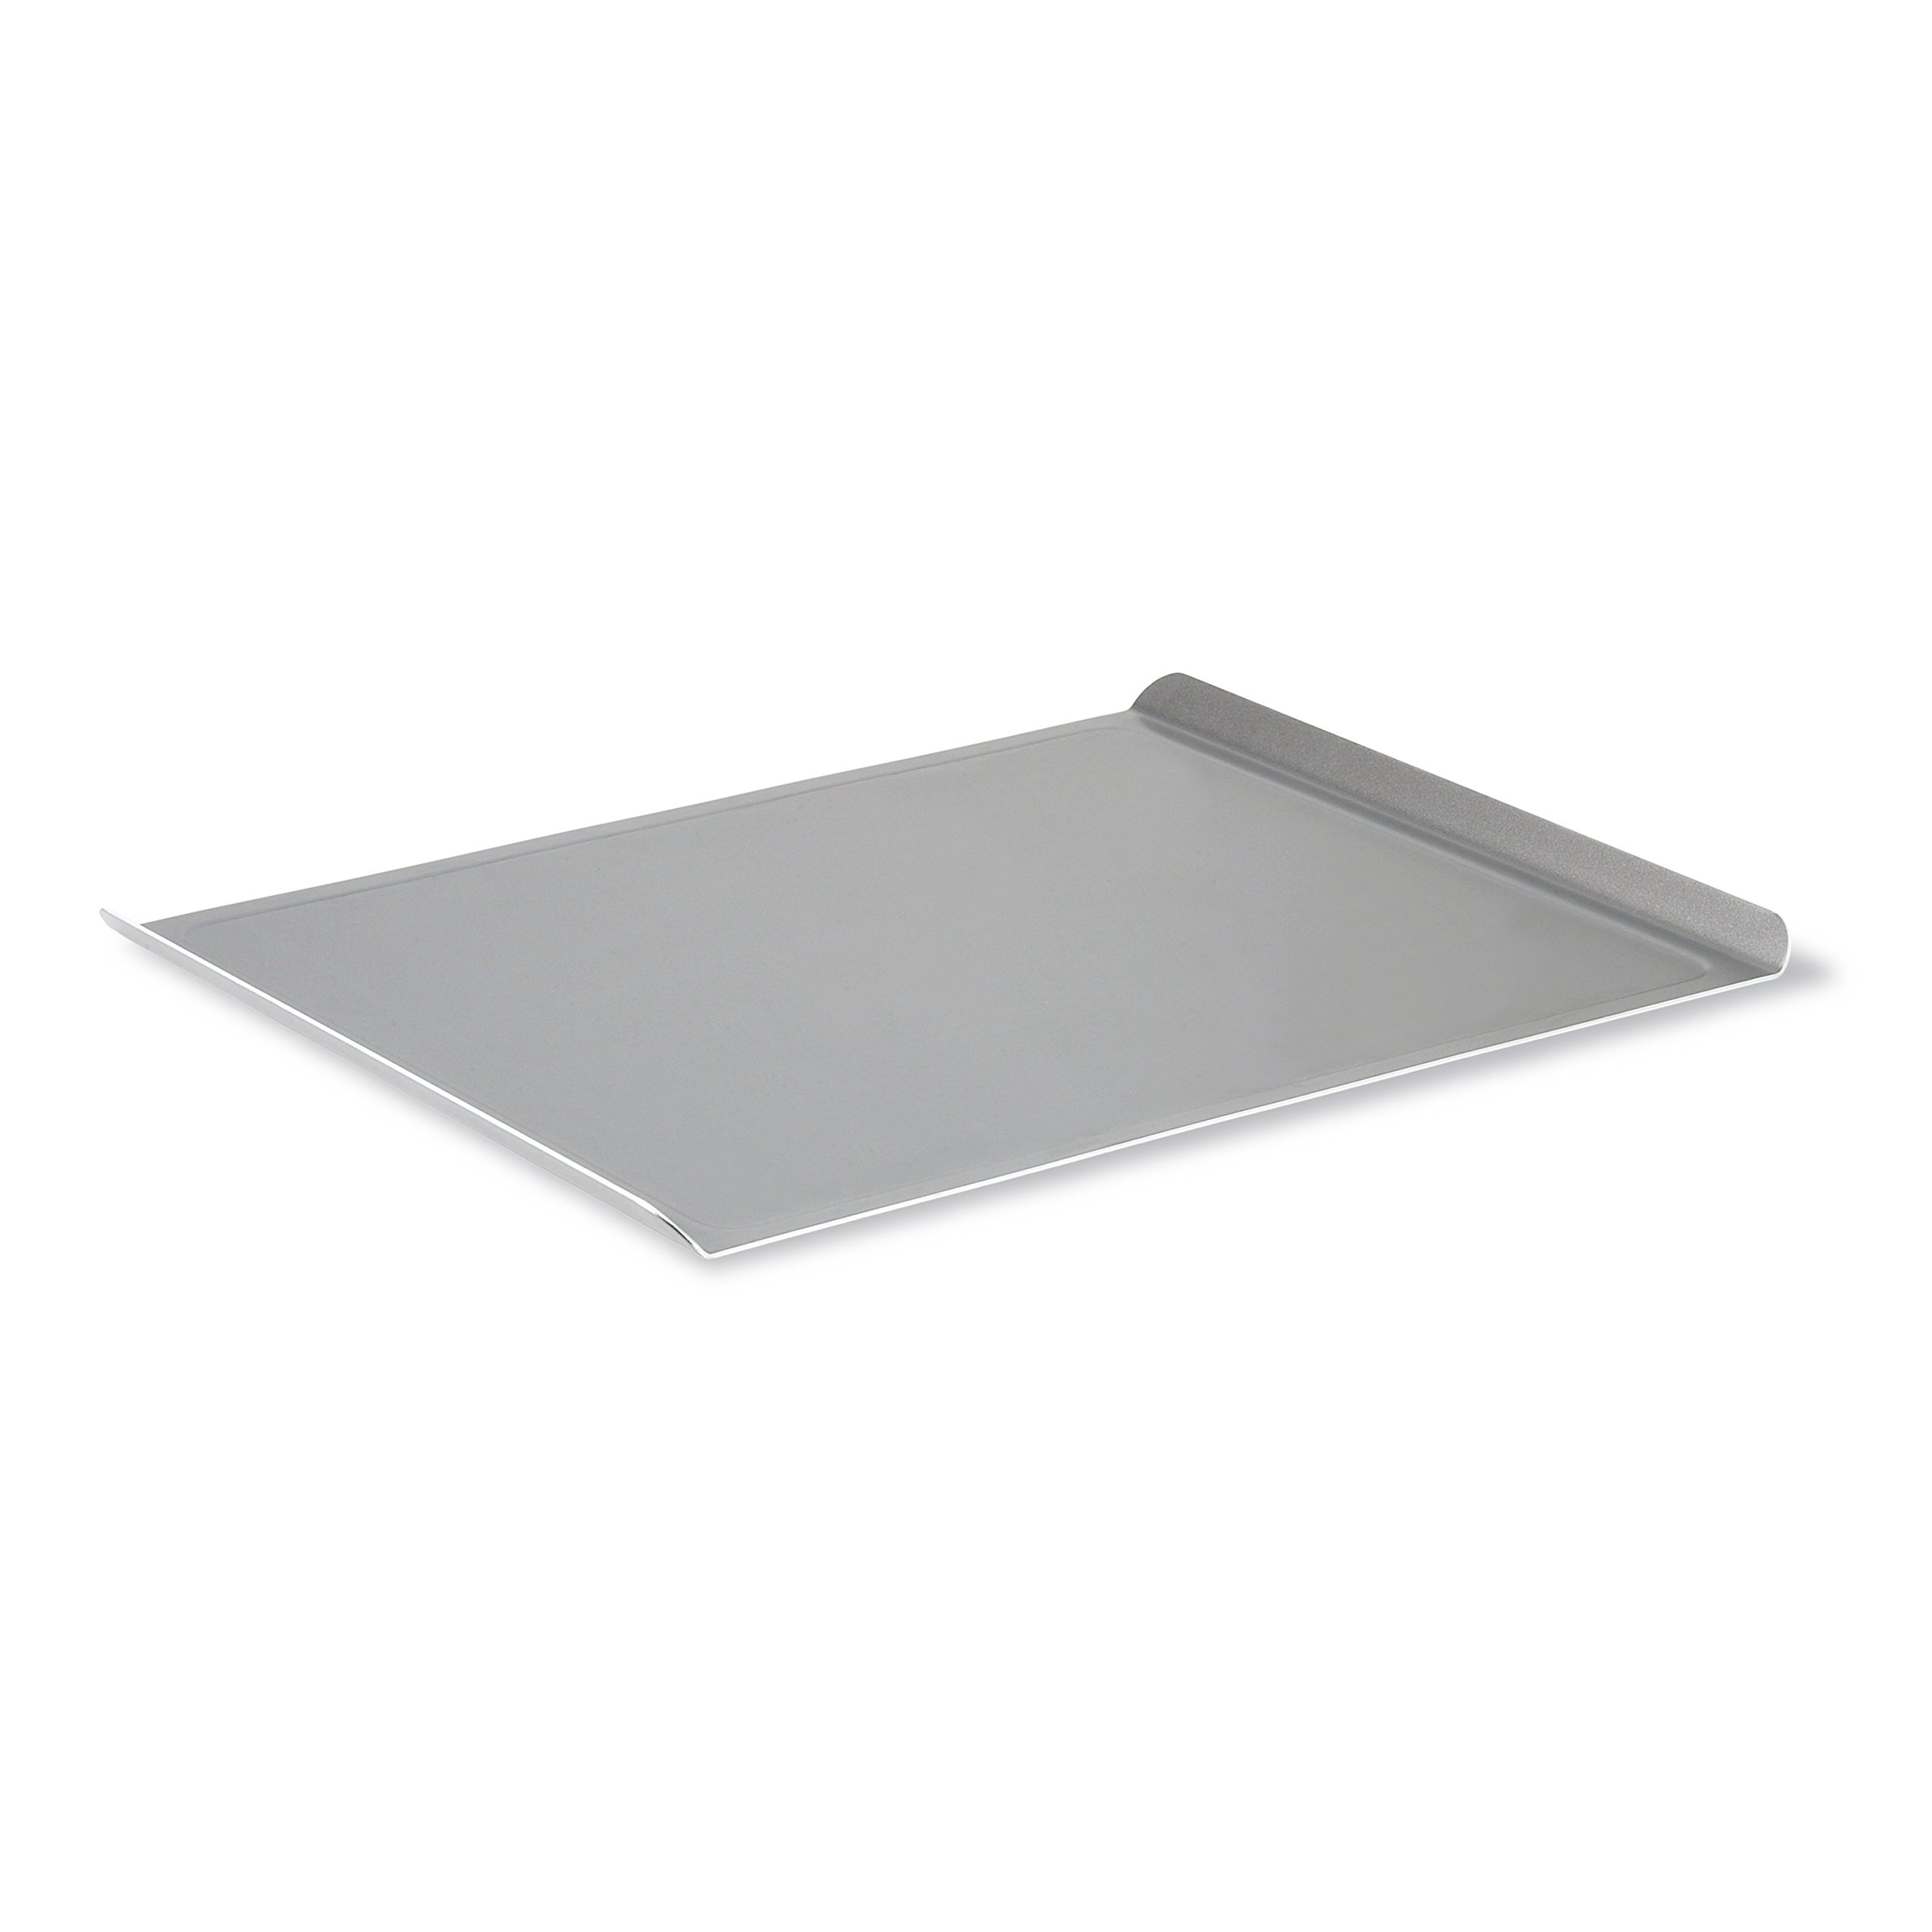 Calphalon Nonstick Bakeware, Cookie Sheet, 14-inch by 17-inch